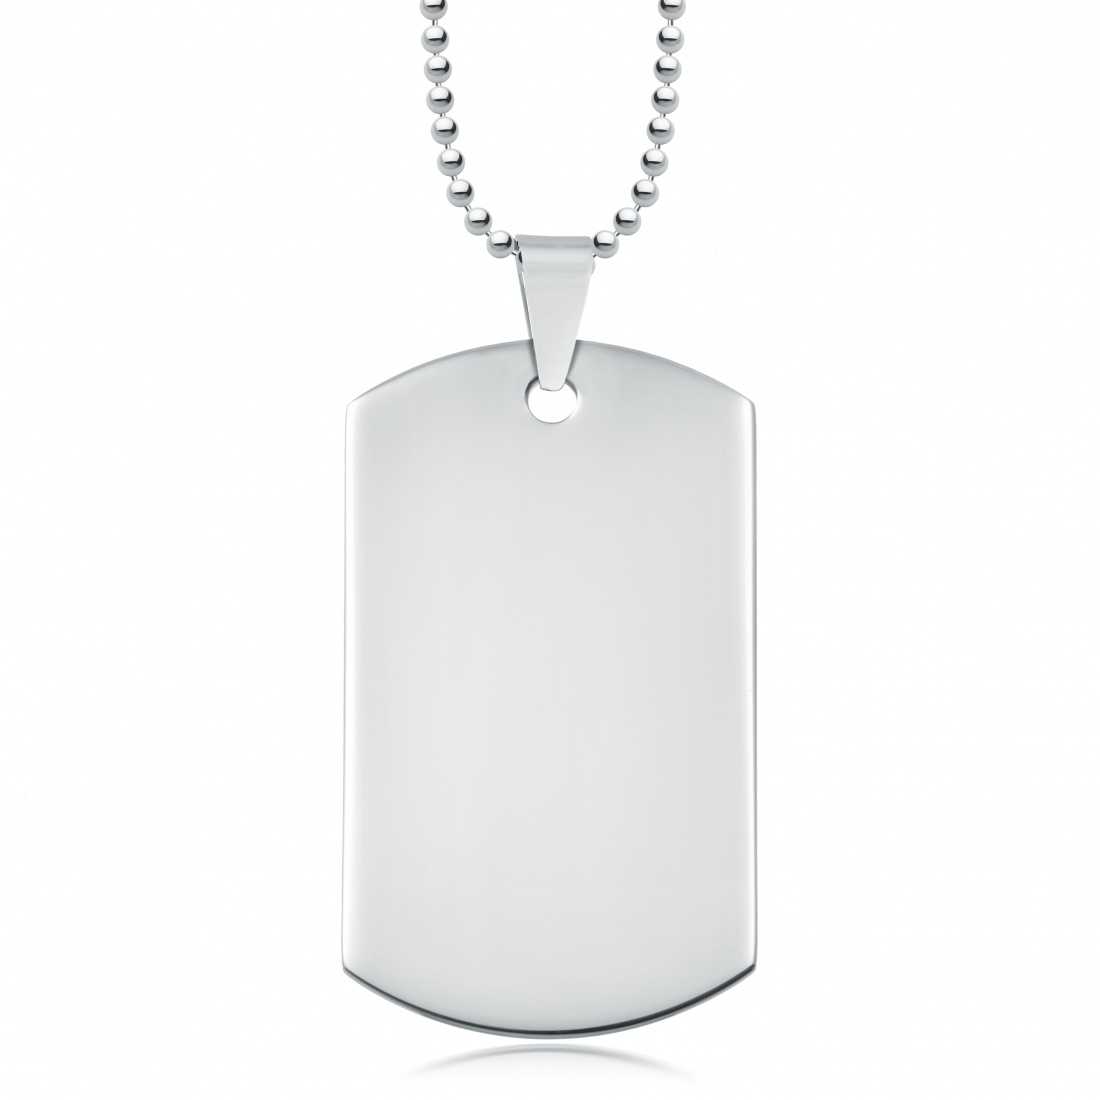 Single Stainless Steel Dog Tag with Ball Chain (can be personalised)